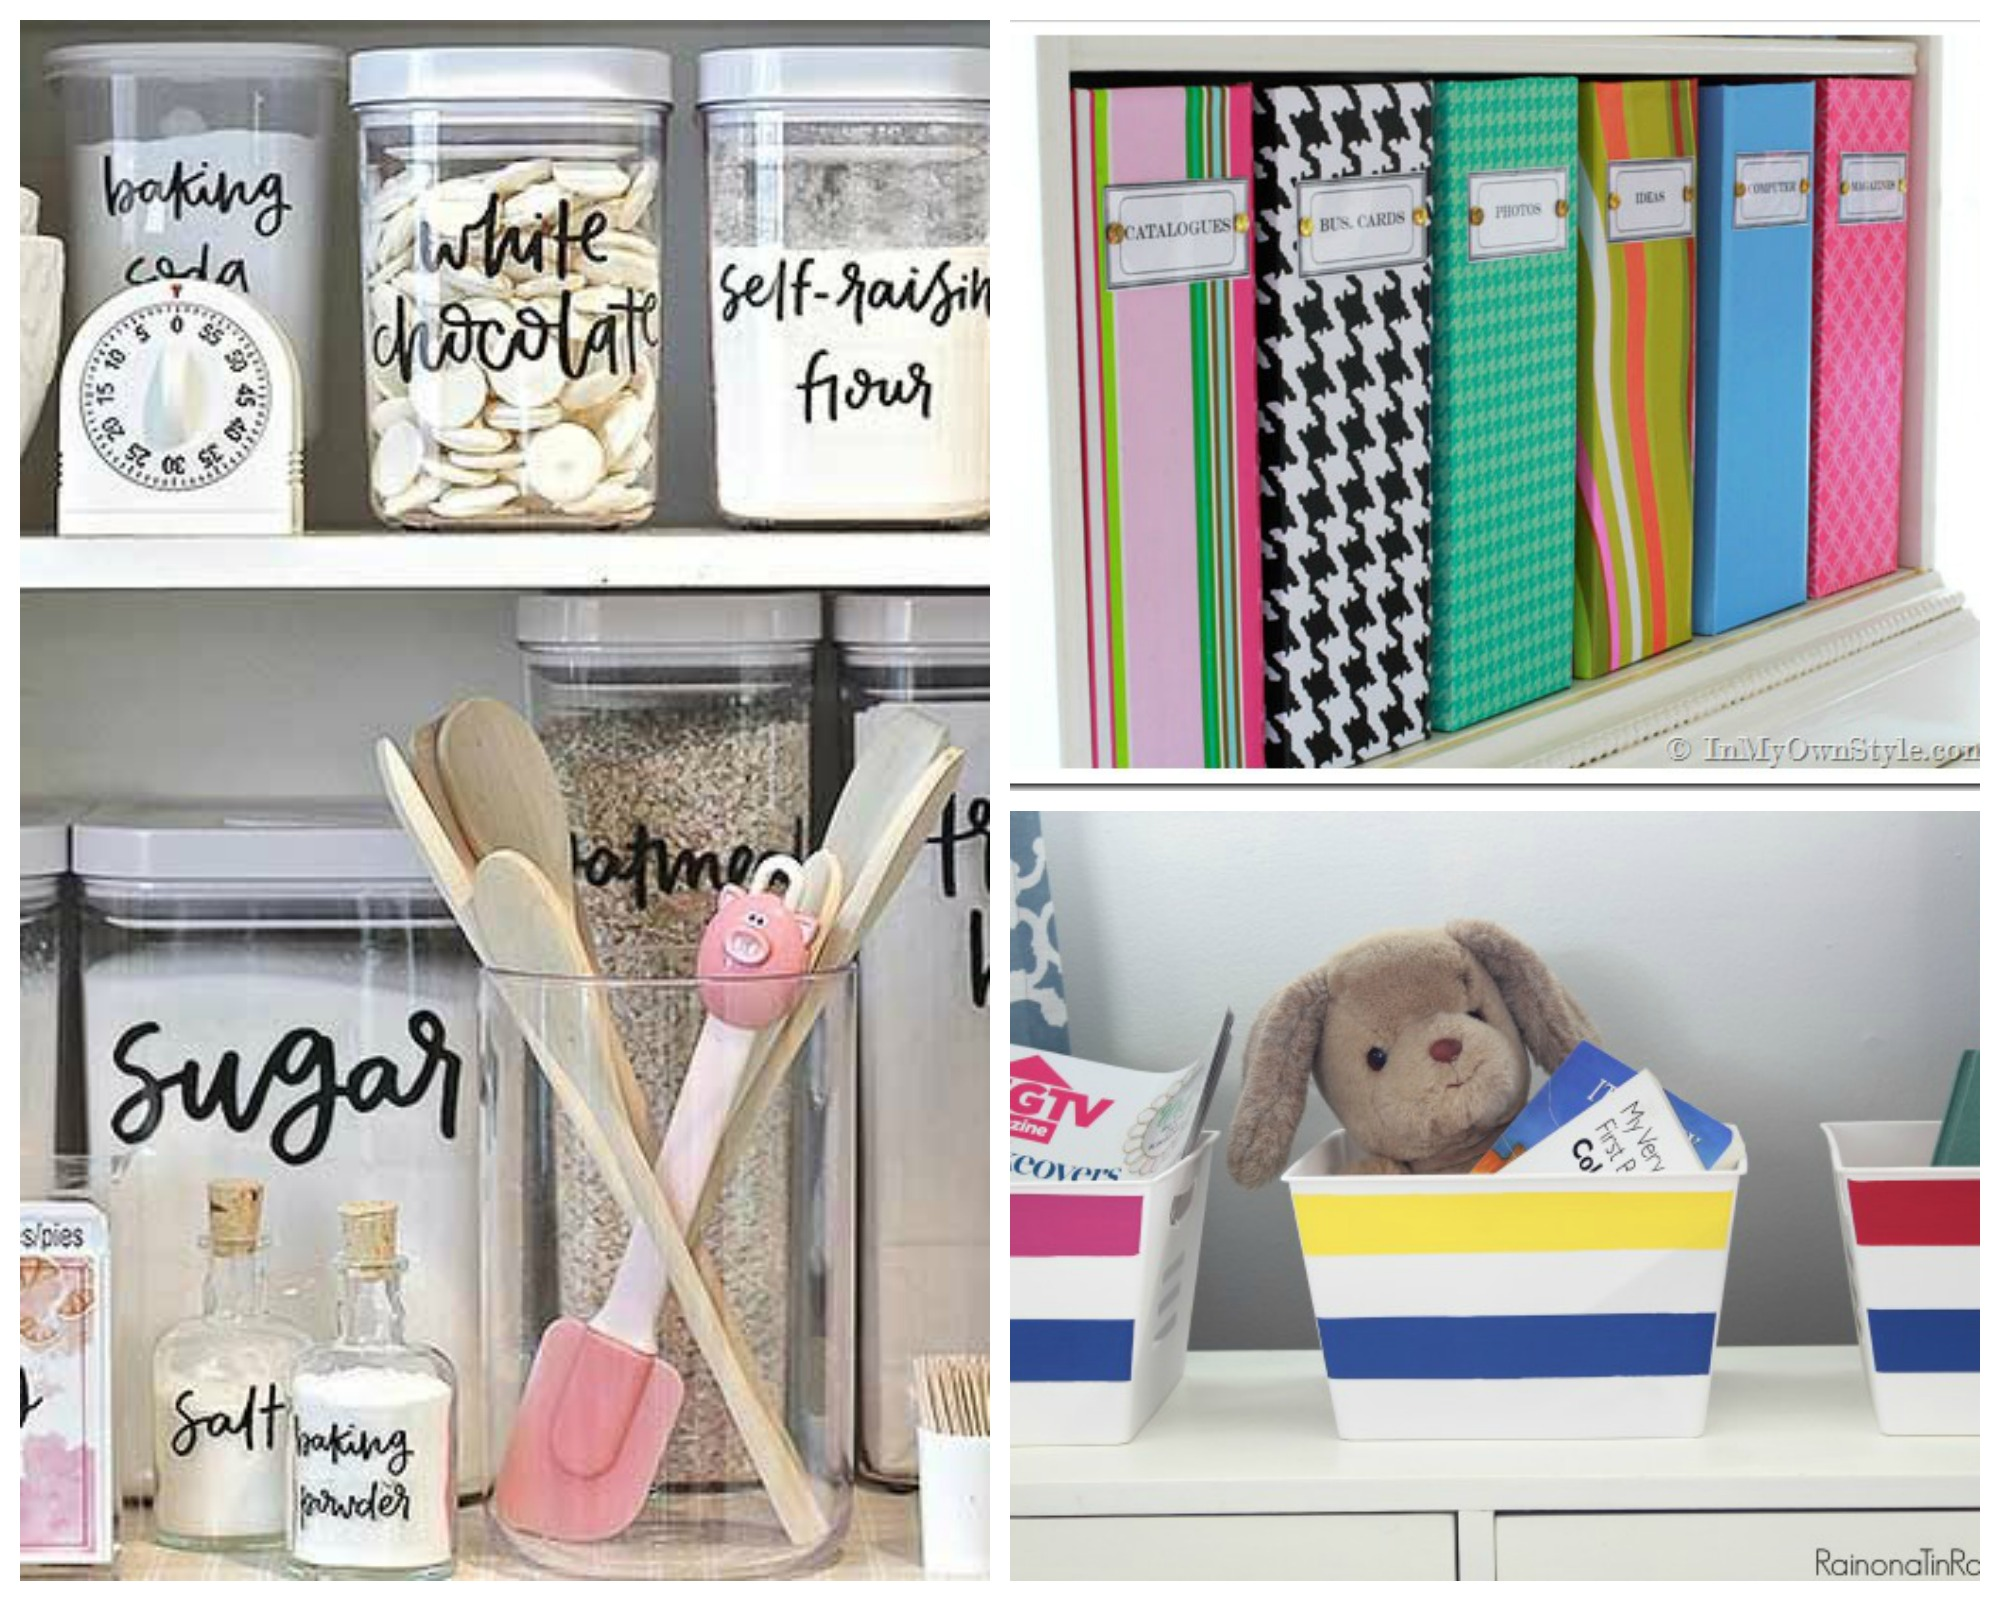 10 cute and thrifty storage ideas that'll make your home look amazing